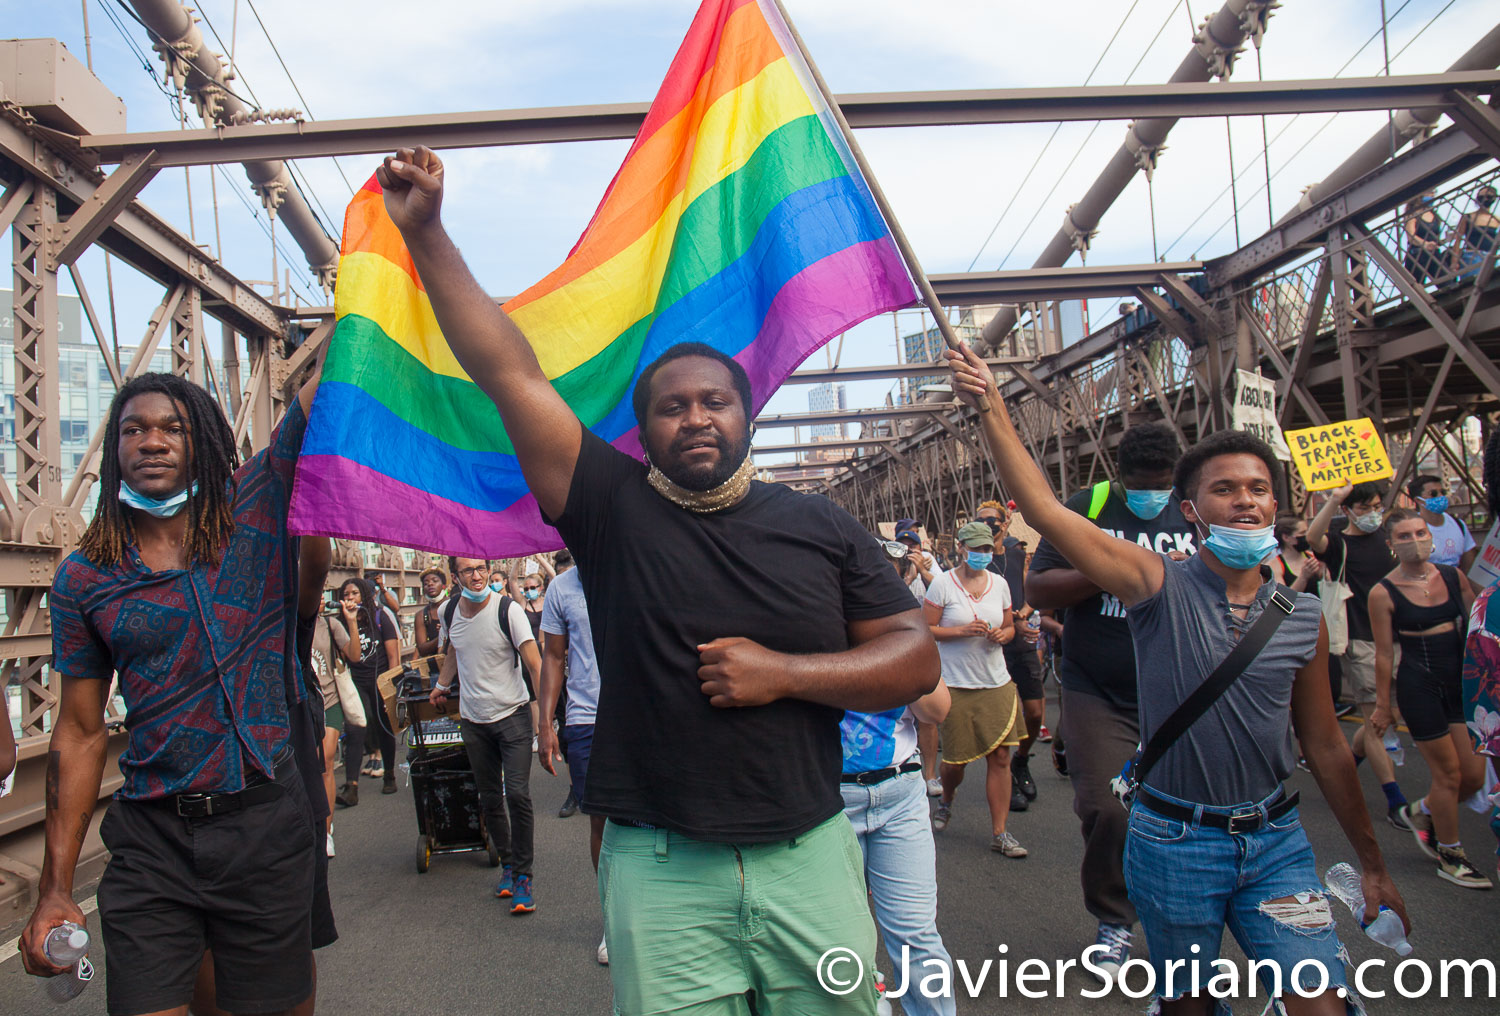 Friday, June 19, 2020. New York City – People celebrate Juneteenth on the Brooklyn Bridge. Brooklyn. Protestors also demand justice for people killed by police officers in the country and they want NYC Council members and NYC Mayor to defund the NYPD by at least one billion and invest in low income communities. Photo by Javier Soriano/www.JavierSoriano.com